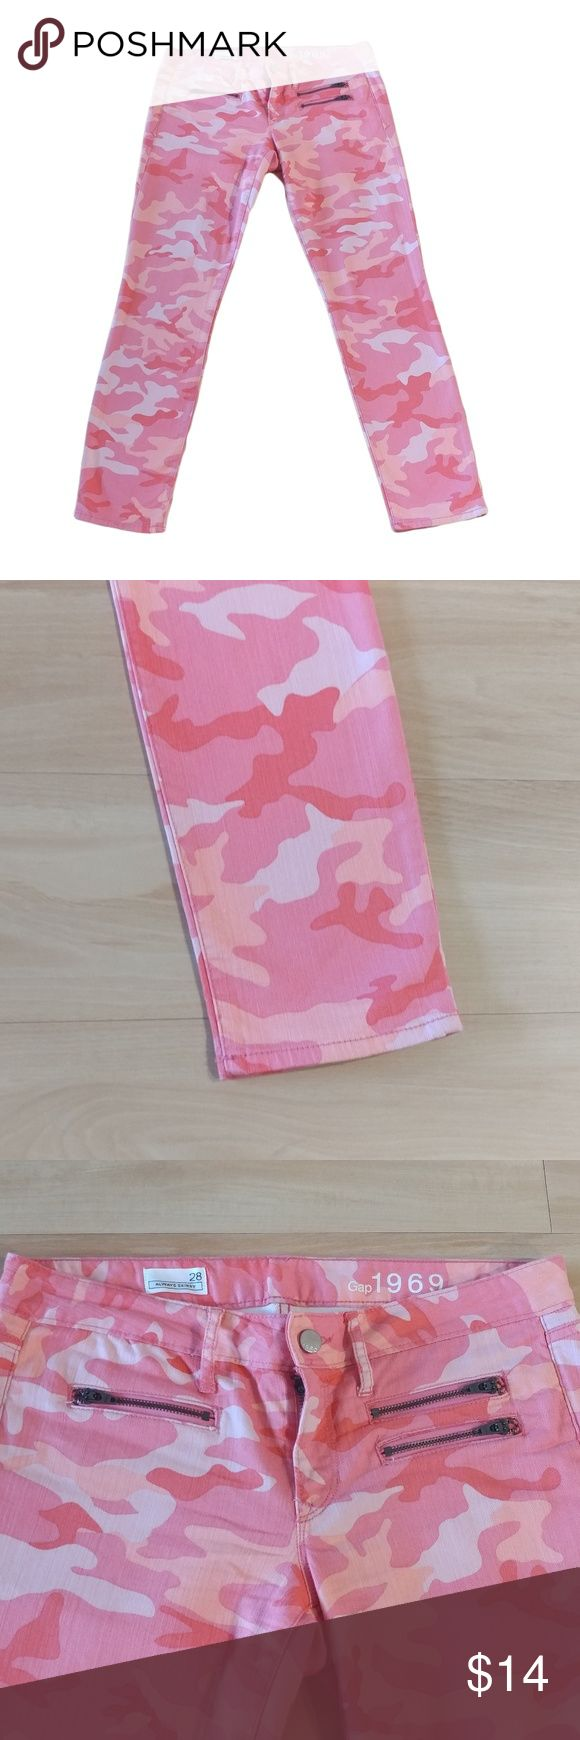 """GAP Jeans Womens Camouflage Skinny Leg Step up your denim style with GAP's camouflage ankle skinny jeans!  Size:28 Color:Pink/Orange (Peach) Style Type:Skinny Leg Care:Machine Washable Fabric:98% Cotton 2% Spandex Measurements:Inseam: 28""""; Front Rise 8""""; Waist 32""""; Hips 36"""" More Information:Front button and zip closure; belt loops. 3 front zip closure pockets & 2 slip pockets. Allover camouflage print. In great condition with no stains or tears noted! Very gently worn! GAP Jeans Skinny"""